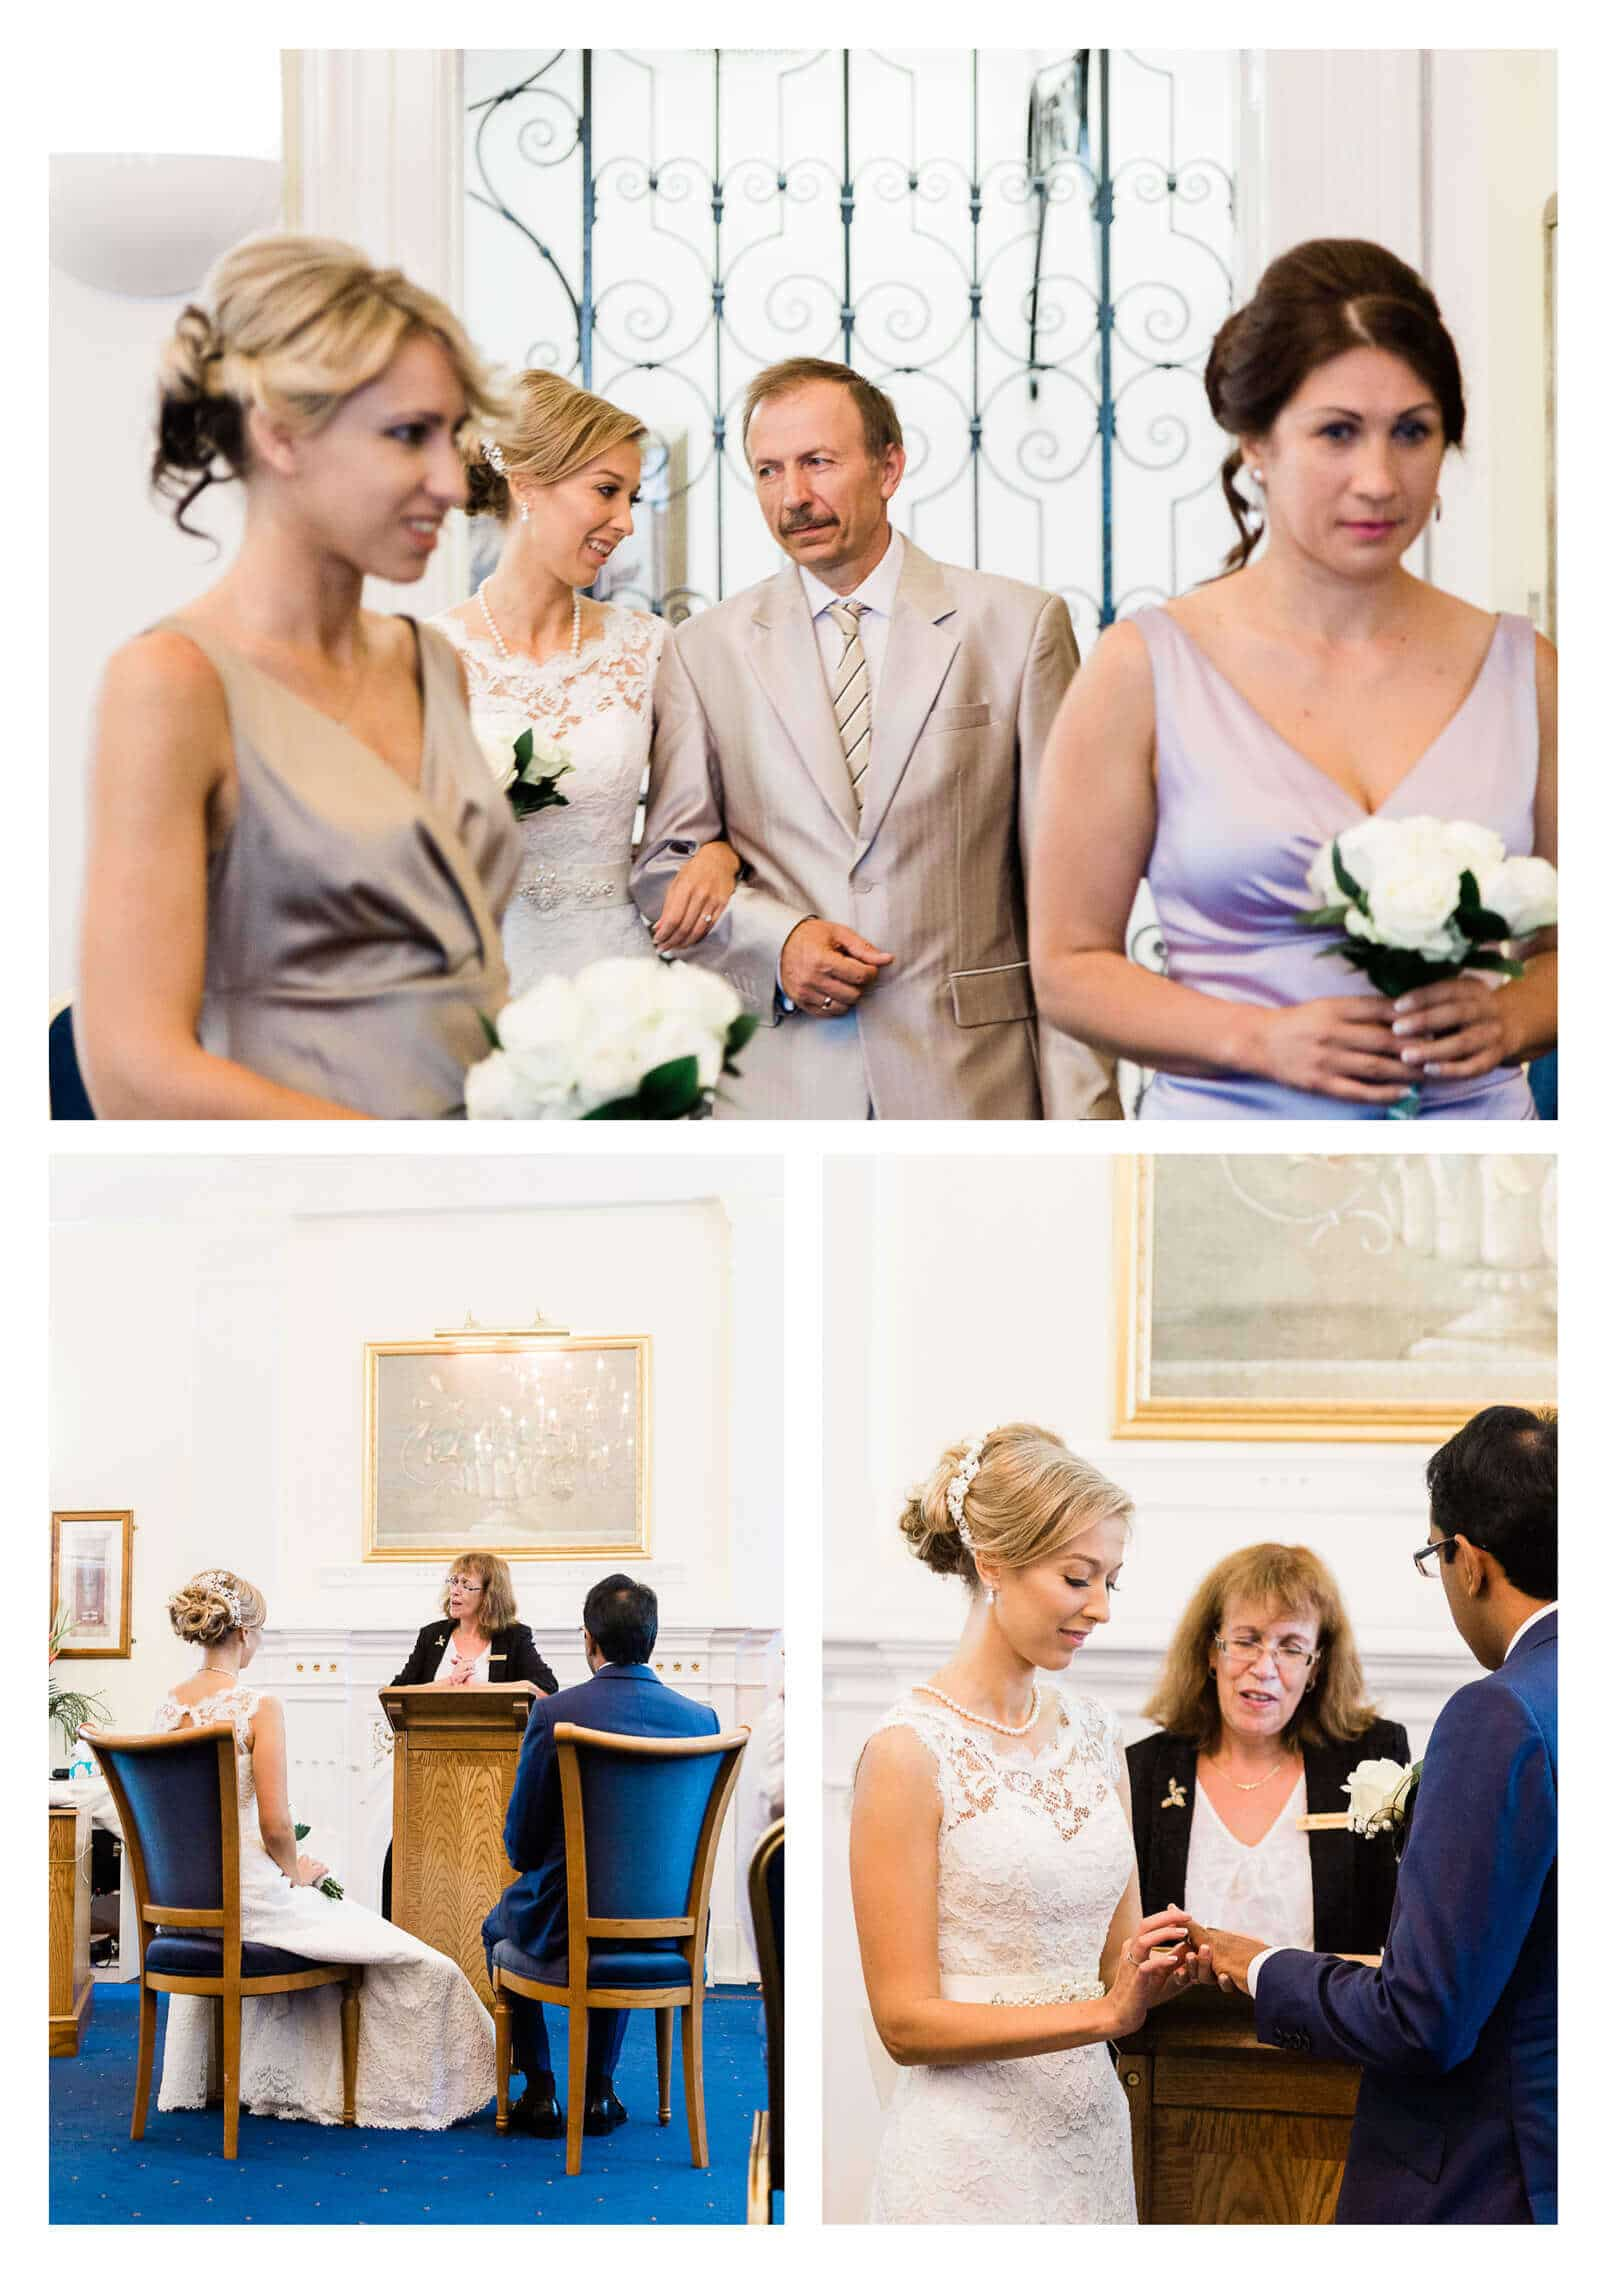 Bromley Public Hall registry wedding ceremony | London photographer